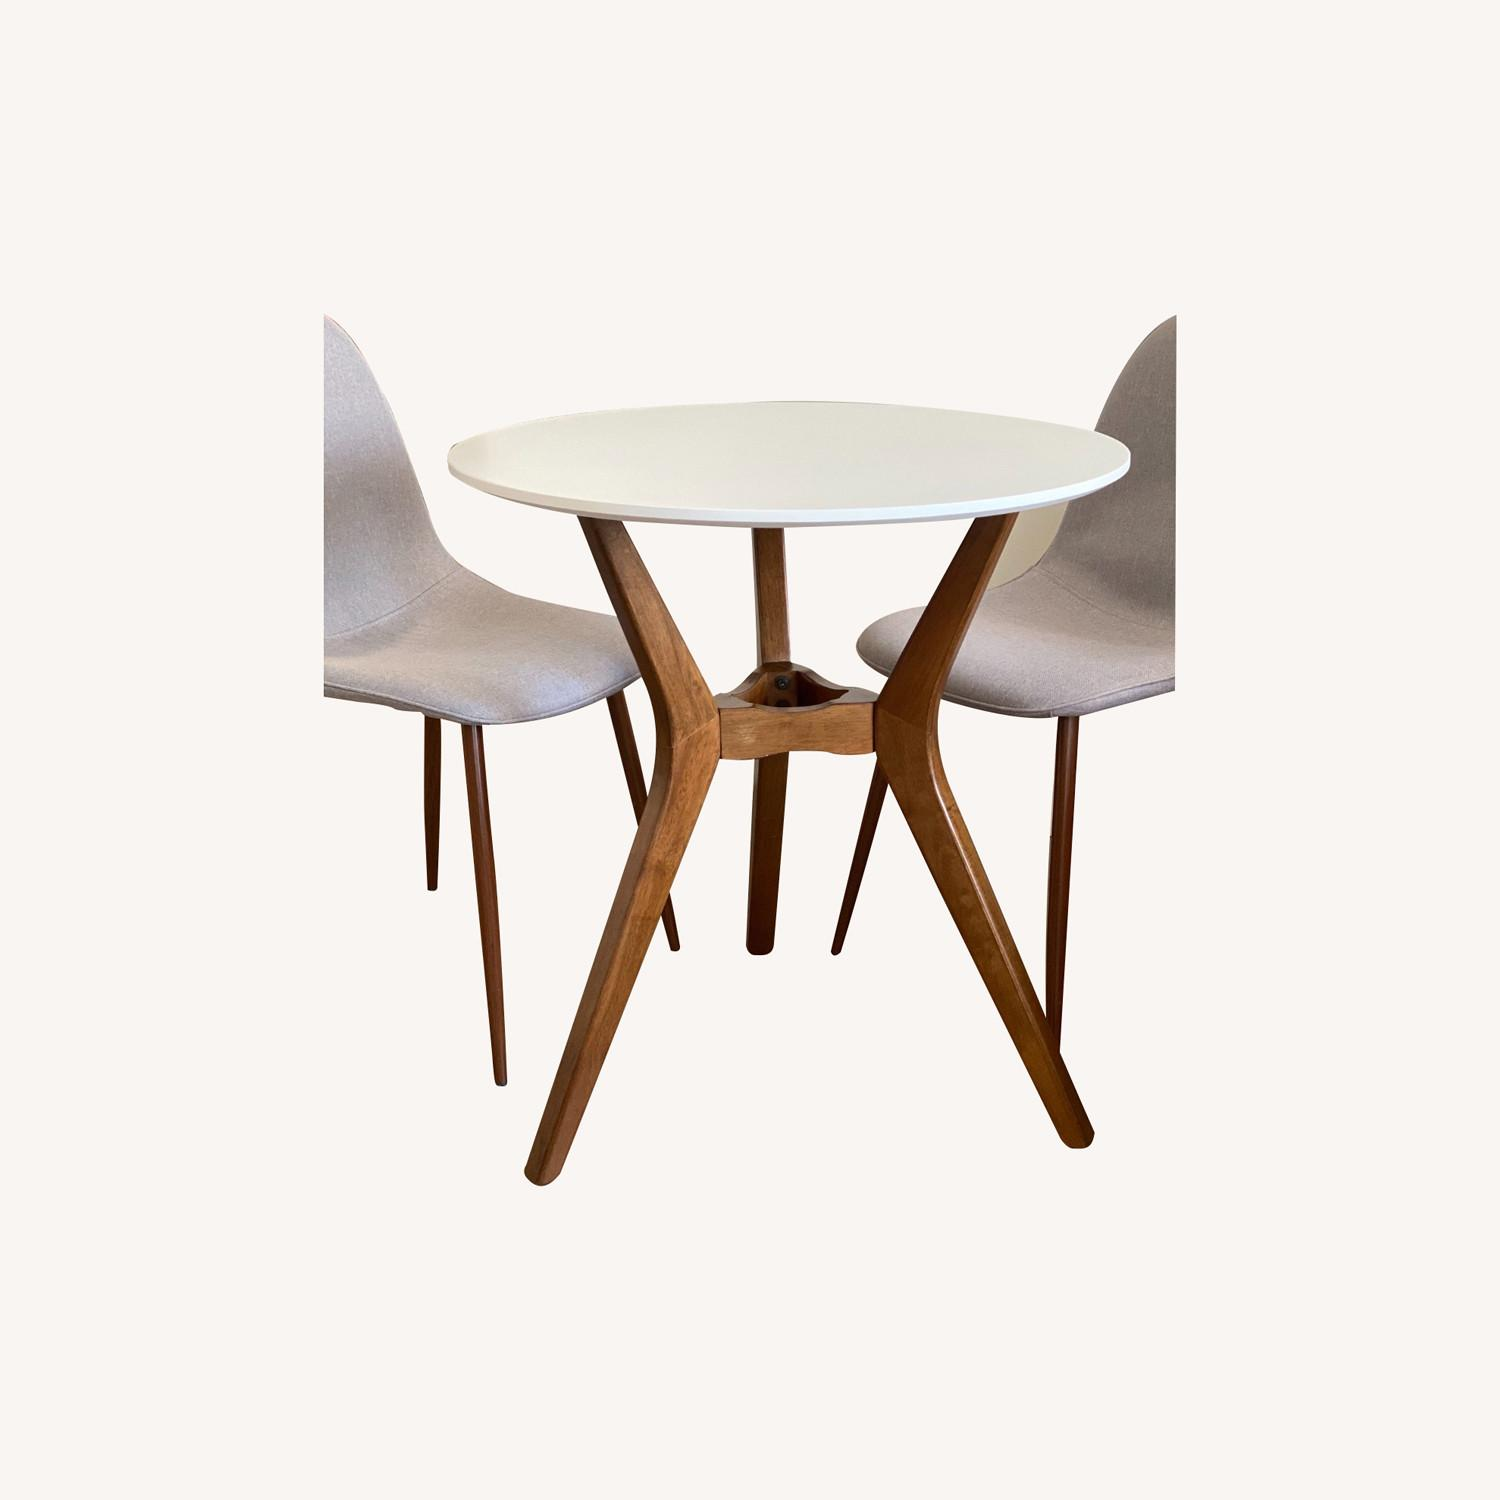 Target Midcentury Bistro Table with 2 Dining Chairs - image-0